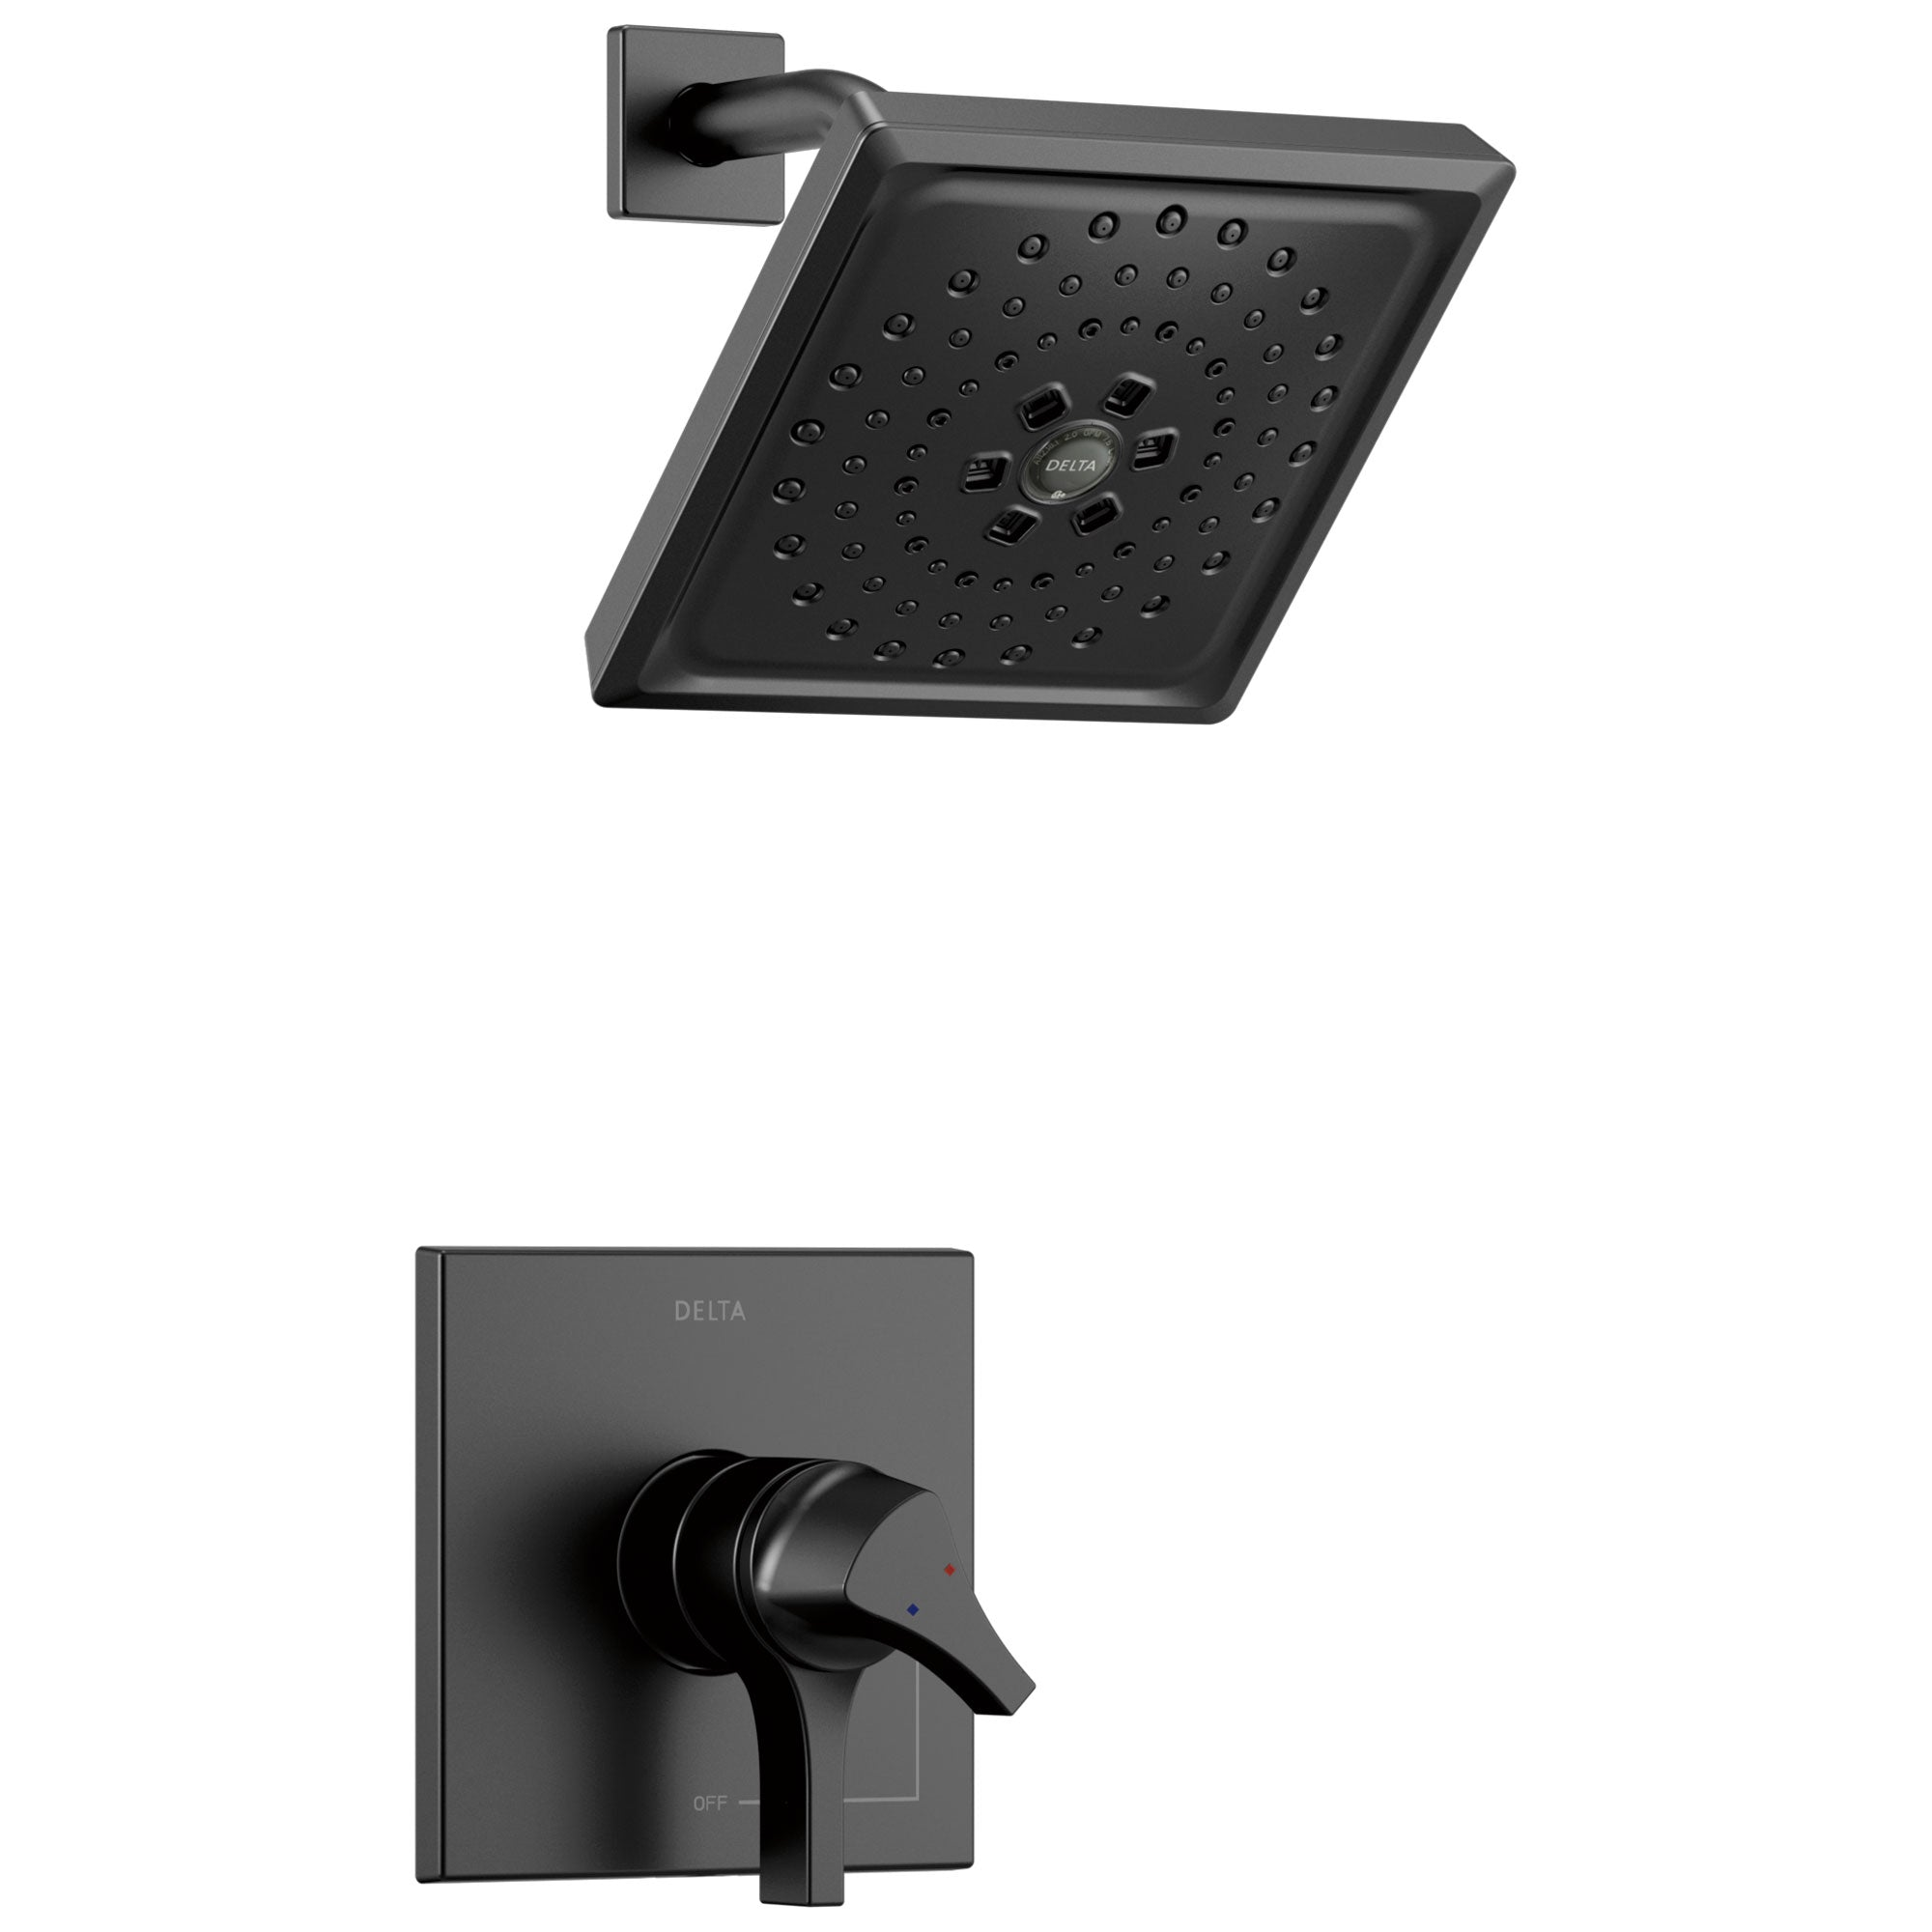 Delta Zura Matte Black Finish Monitor 17 Series H2Okinetic Shower Only Faucet with Handles, Cartridge, and Valve without Stops D3373V